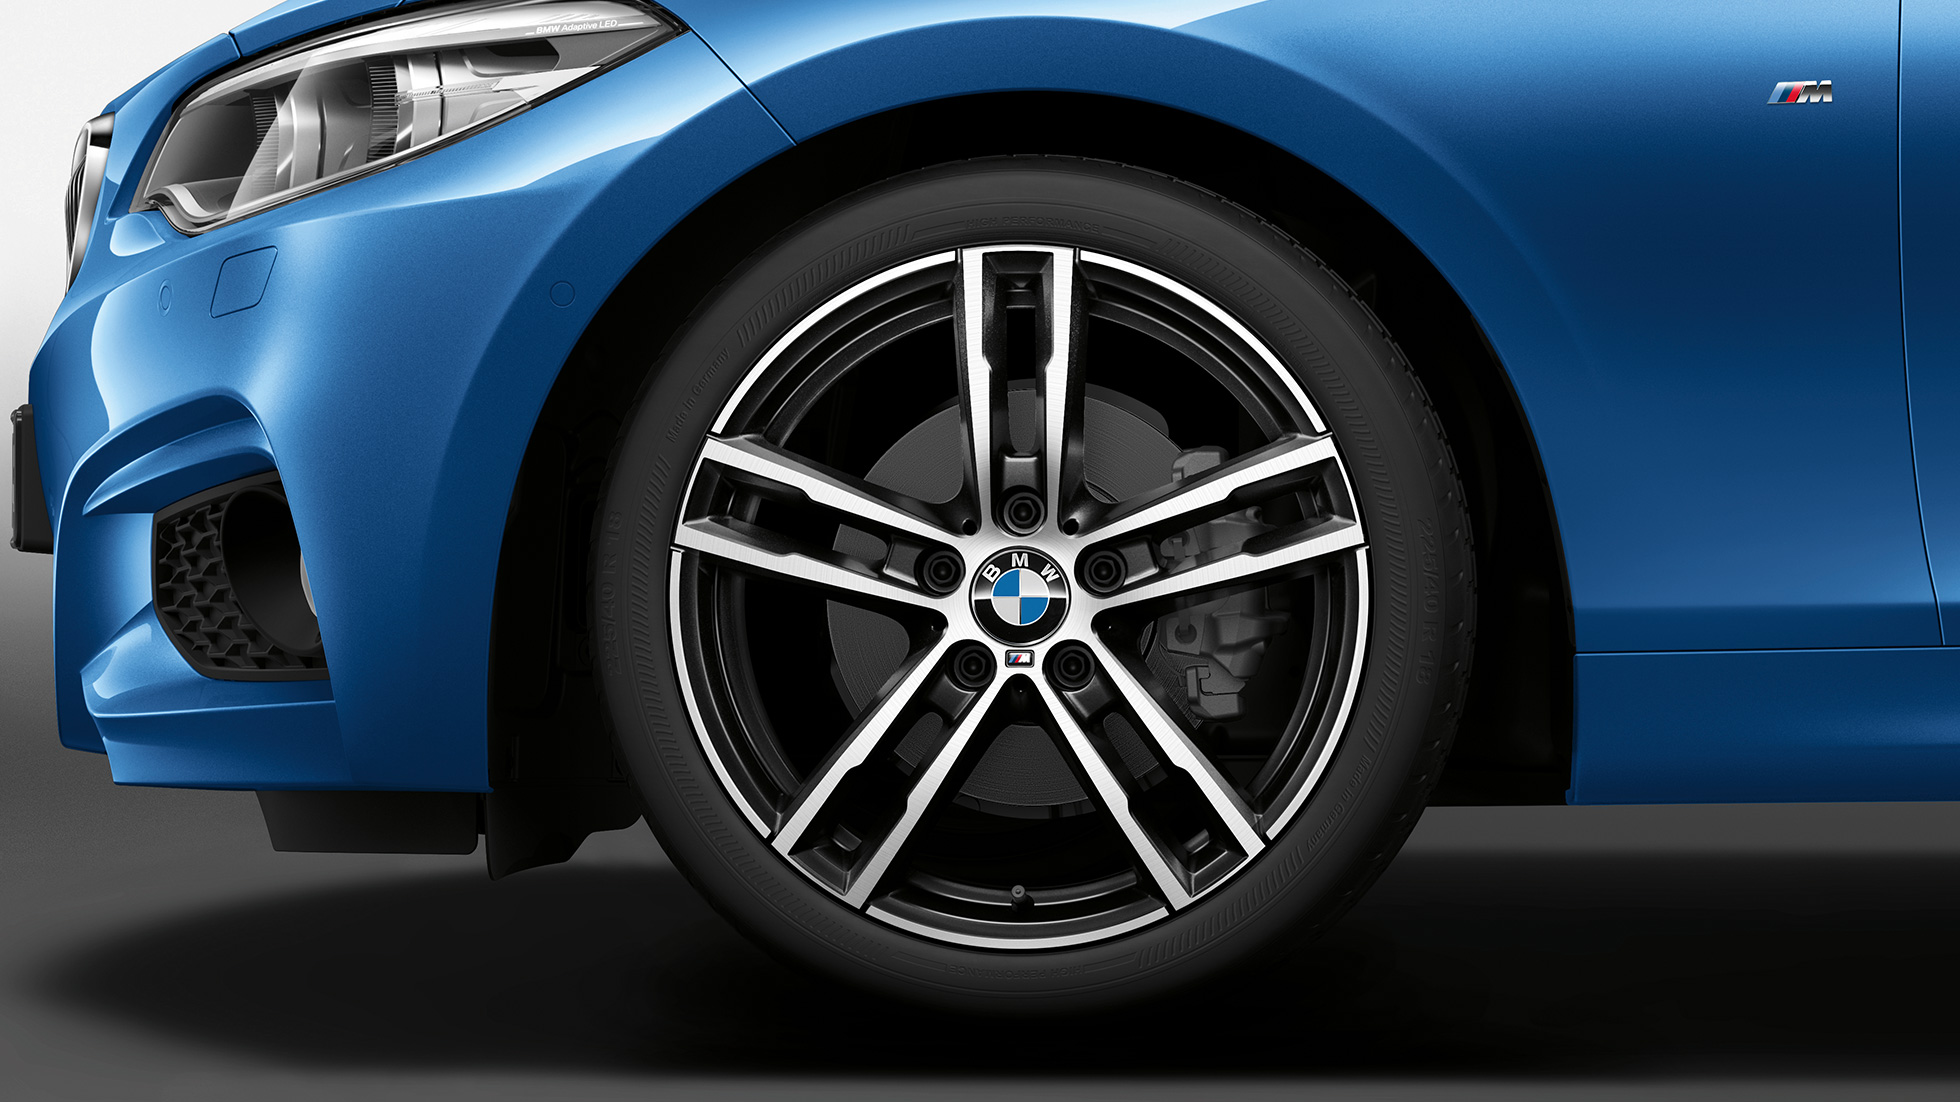 BMW 2 Series Coupé, Model M Sport wheels